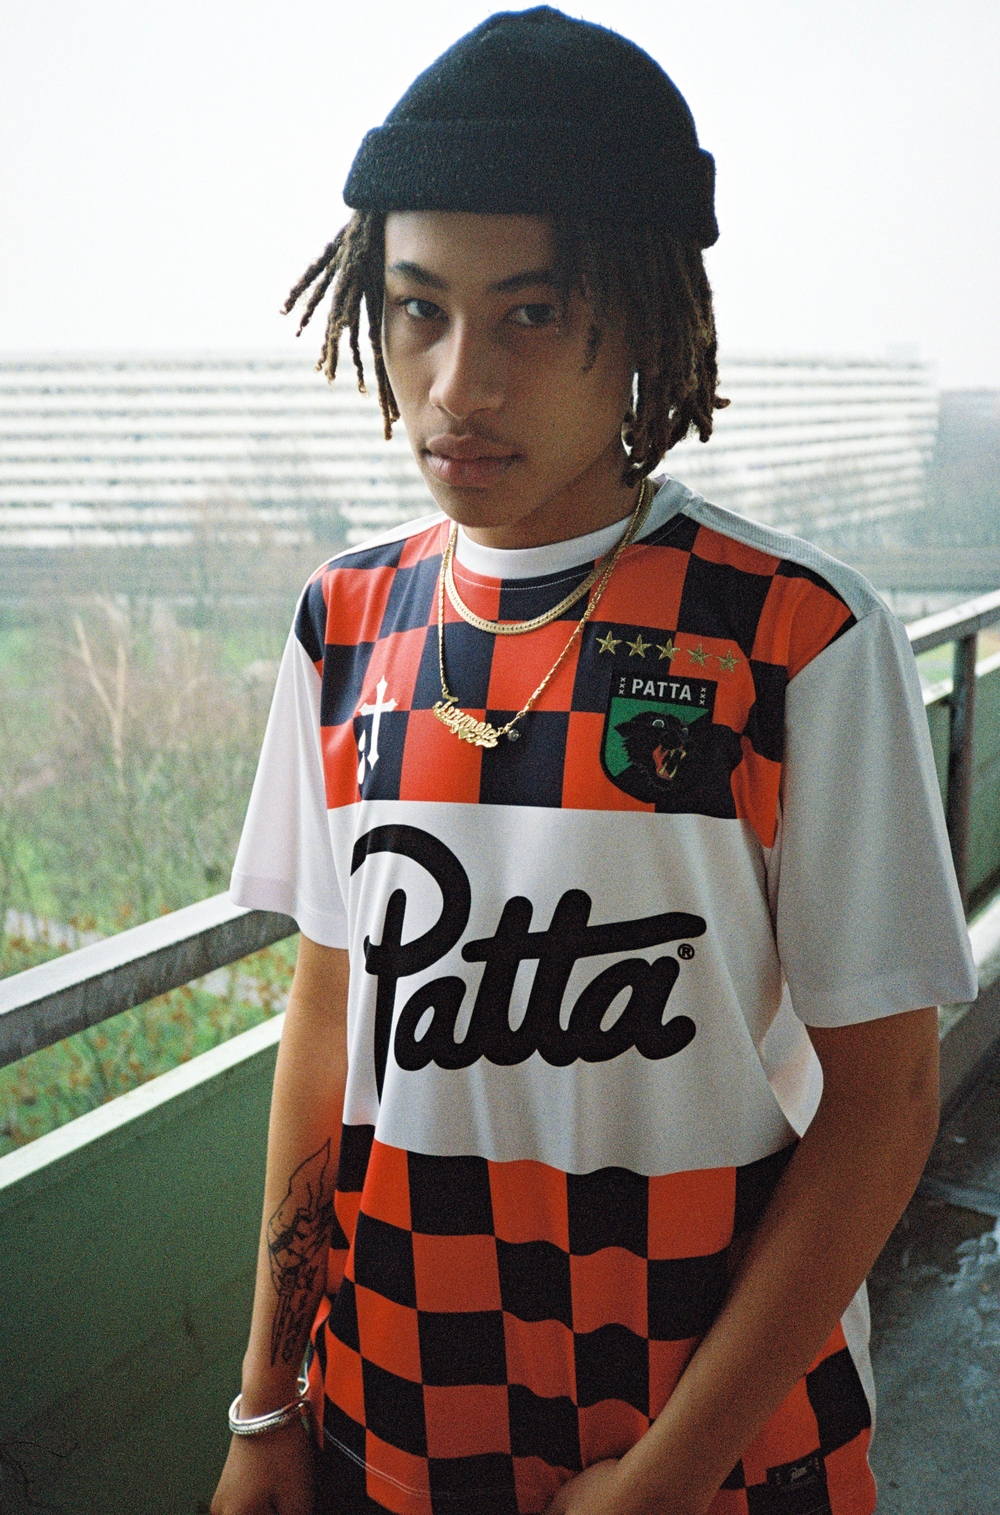 © Vincent van de Waal for Patta